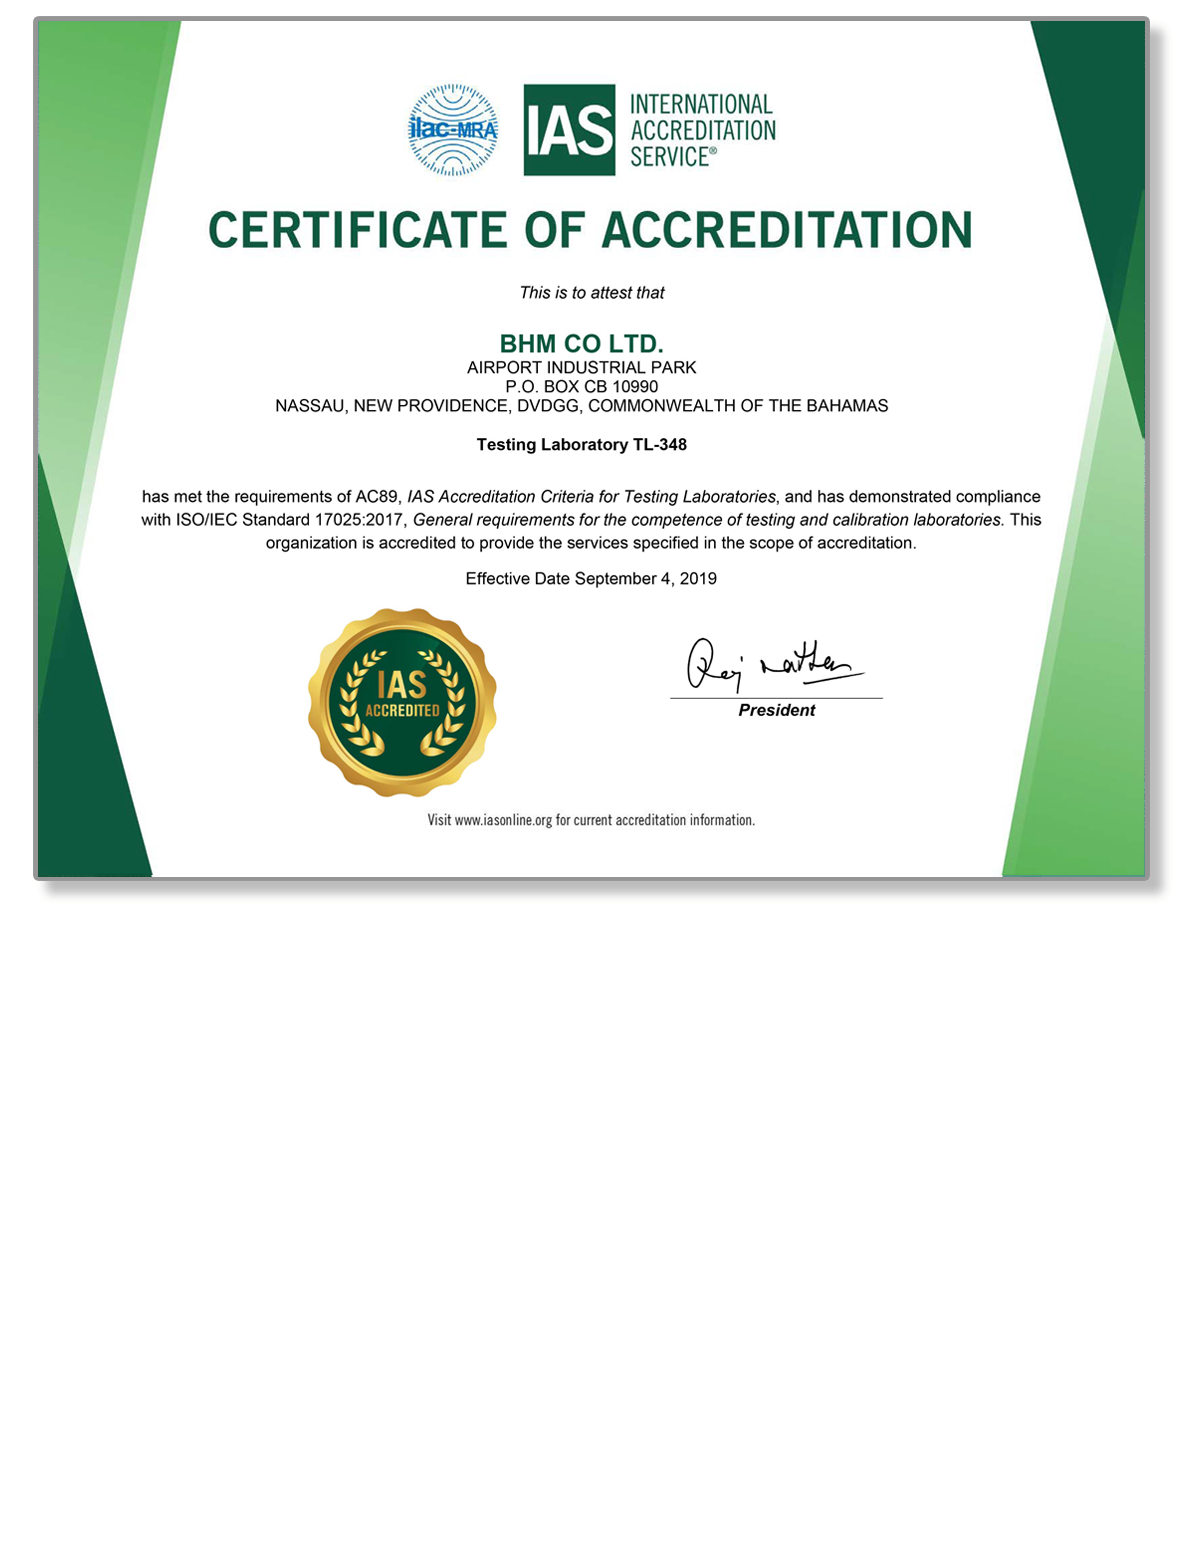 BHM Accreditation ISO17025